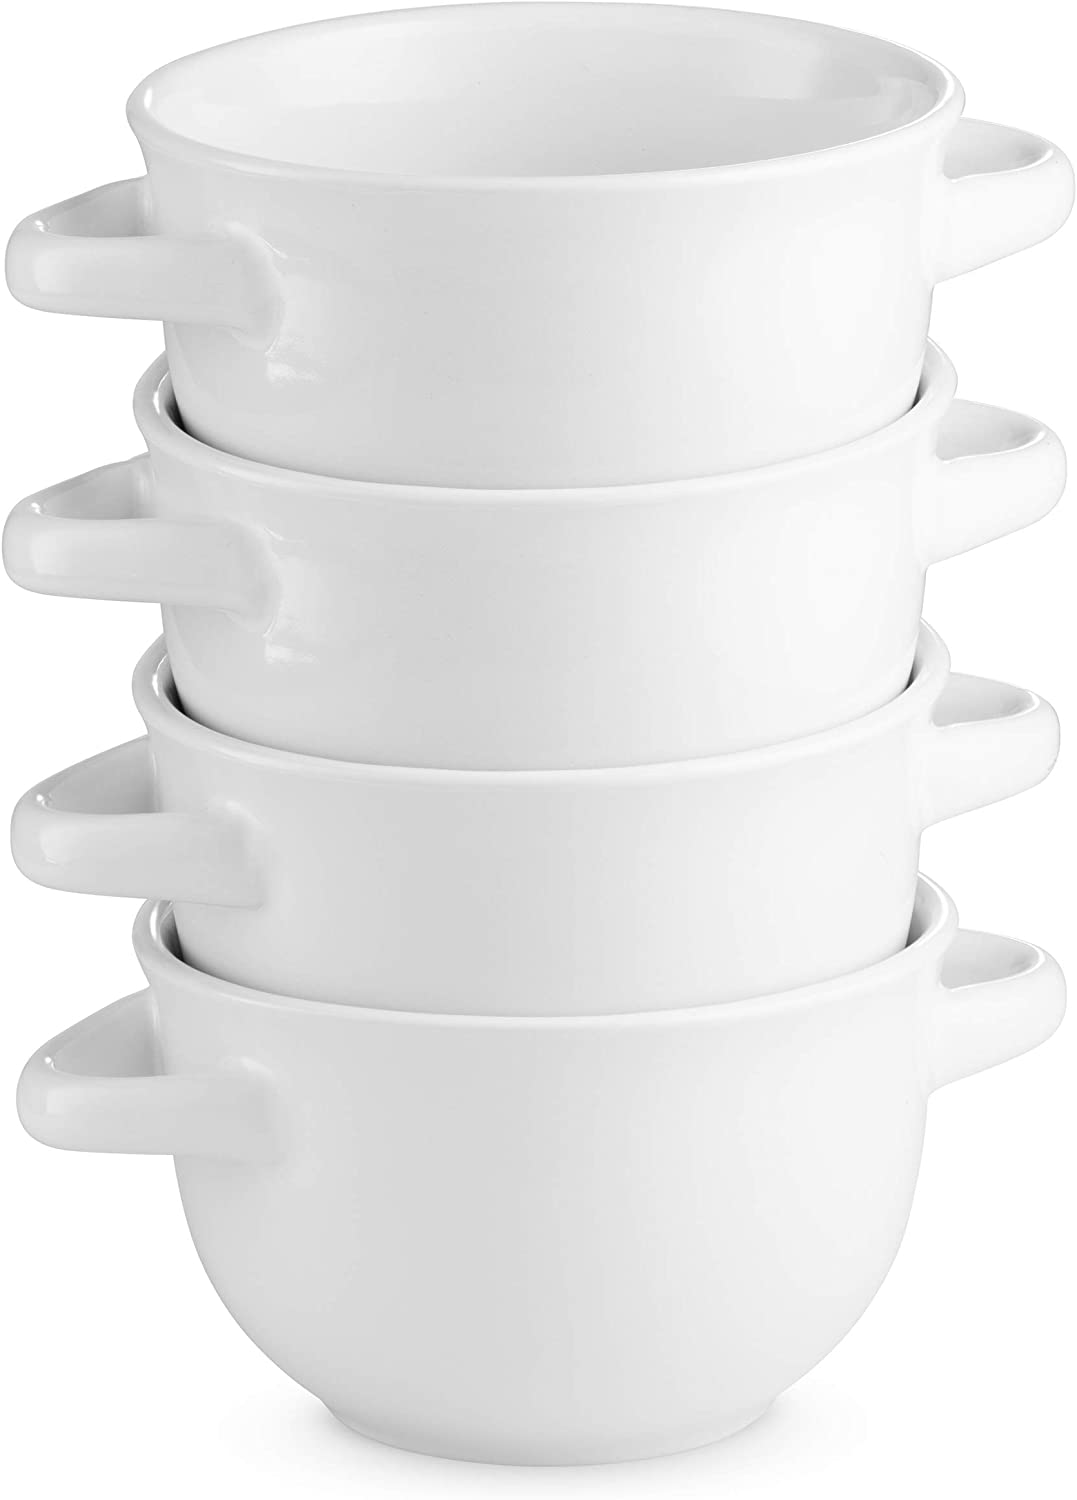 Soup Crocks with Handles, Ceramic Make, Soup, Chilli, by KooK, 22oz, Set of 4 (White)